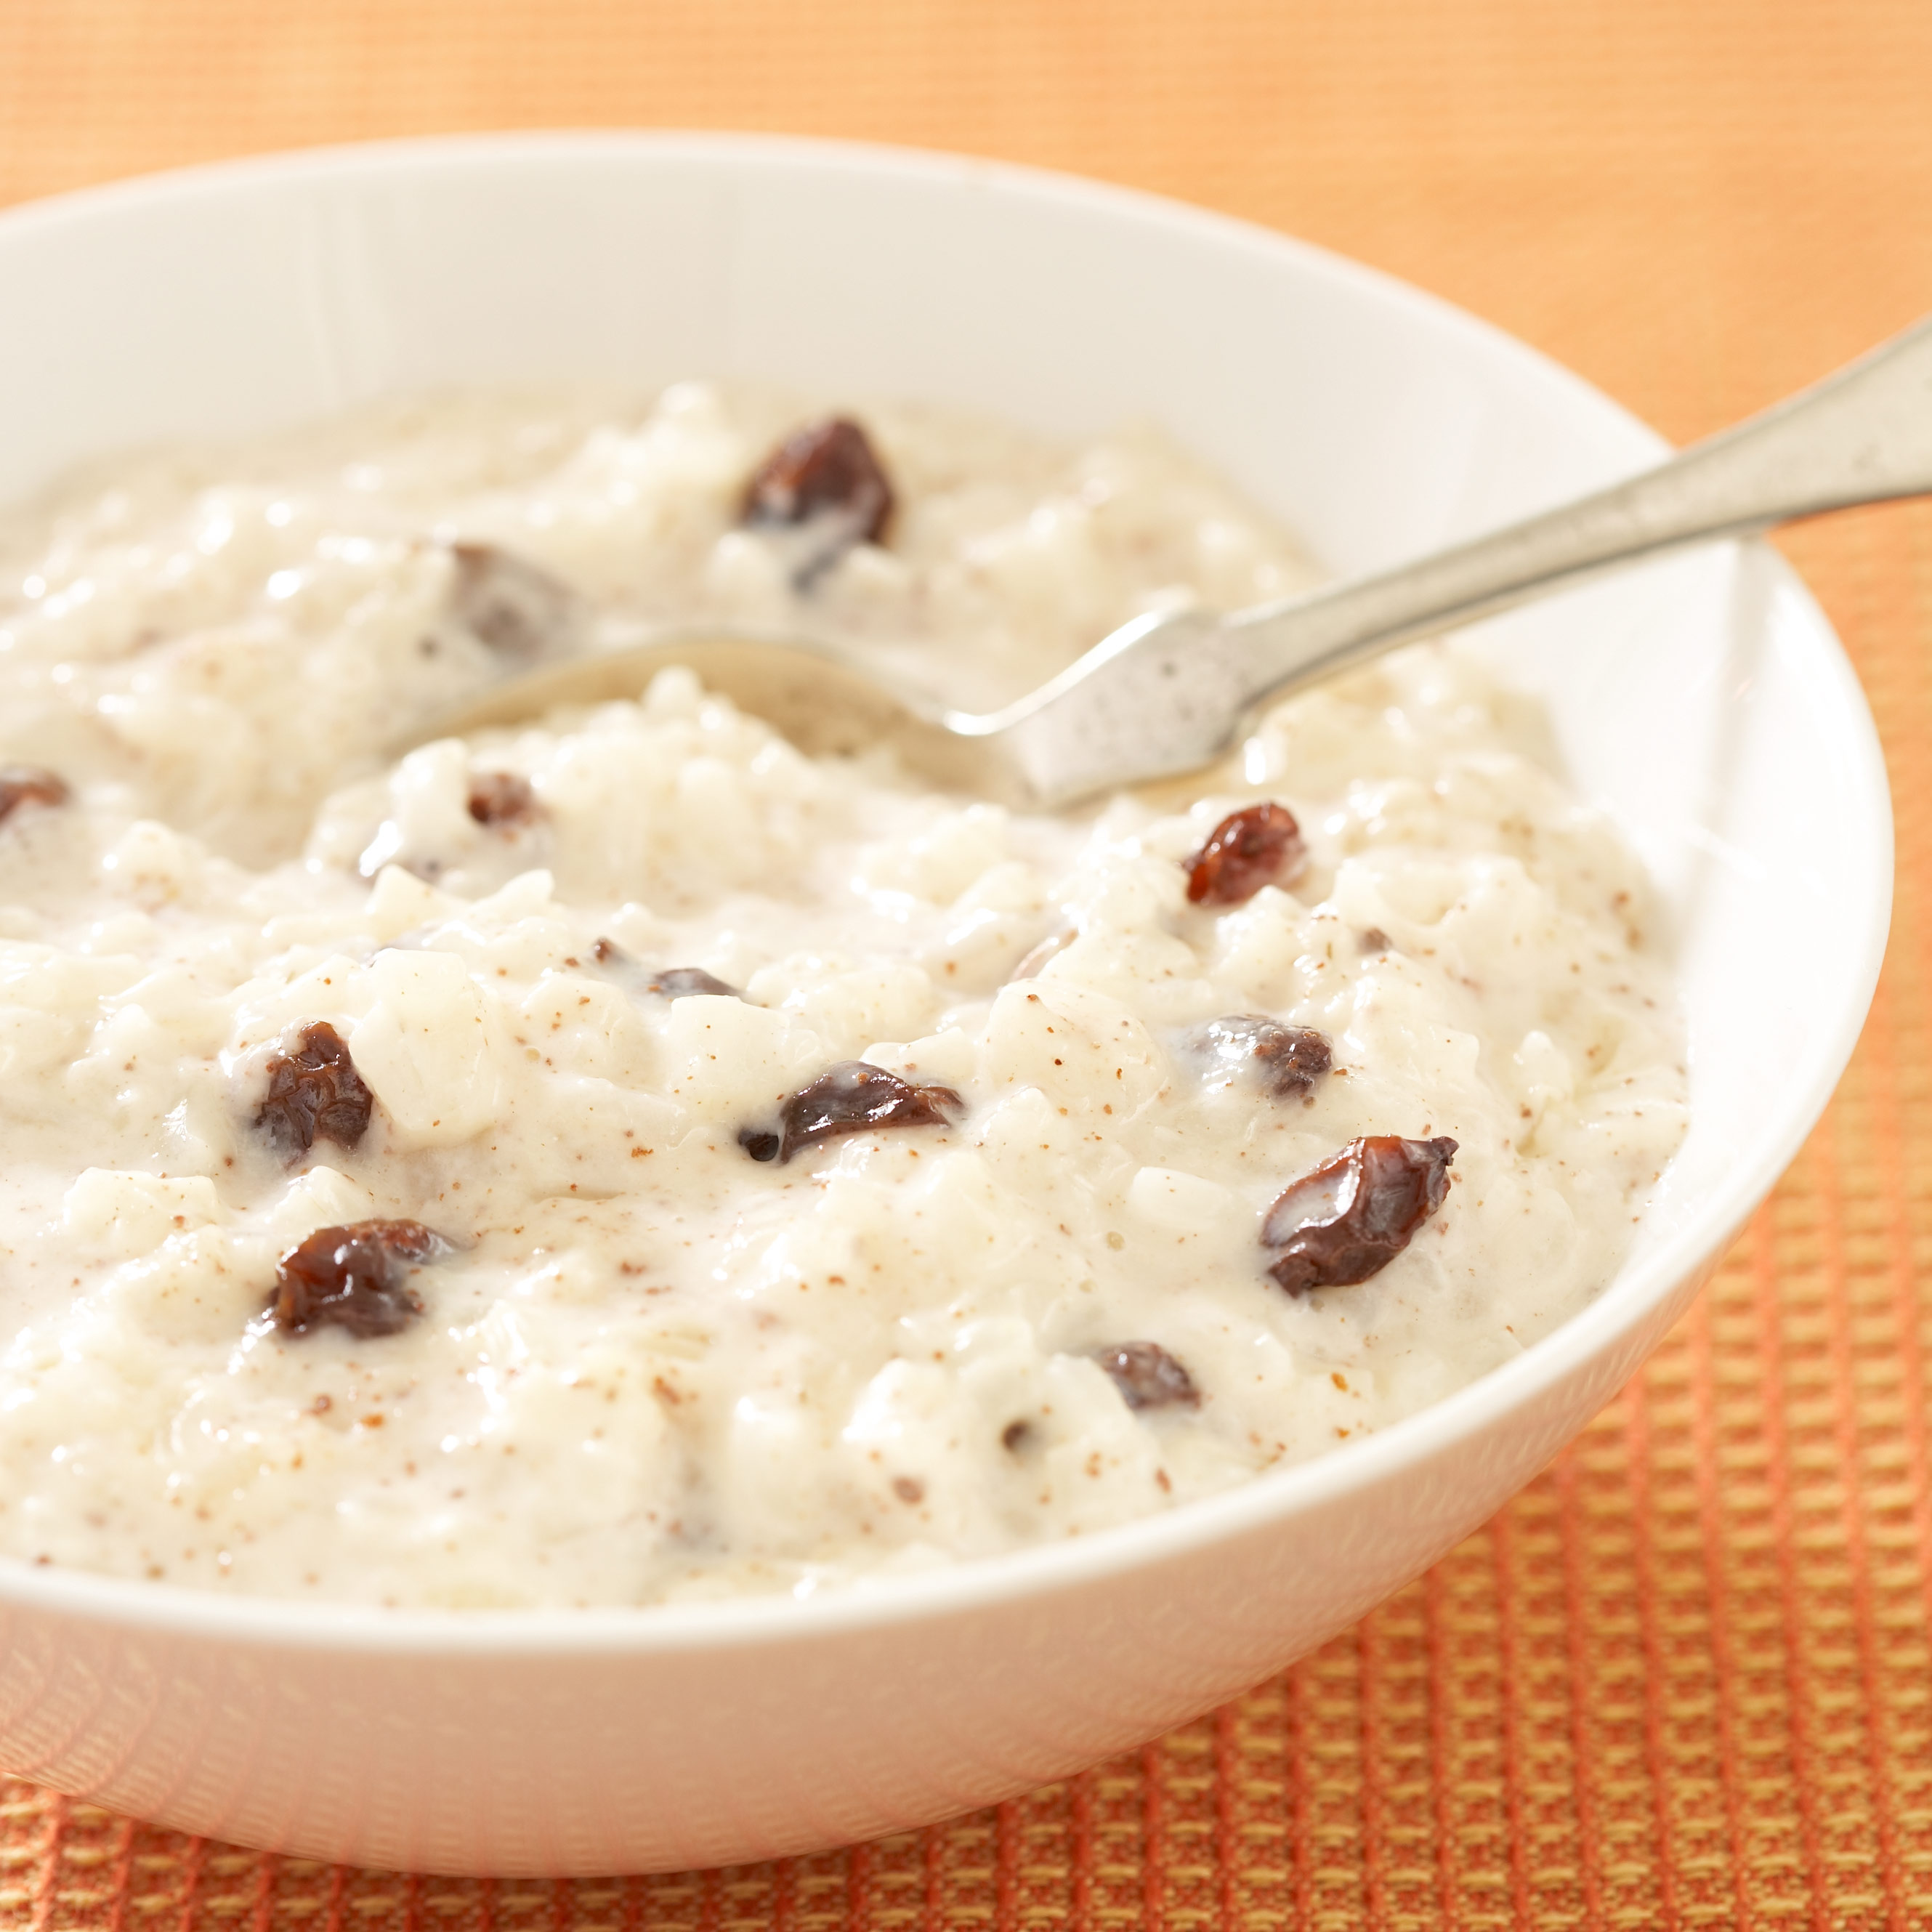 Simple Stovetop Rice Pudding Recipe - Cook's Illustrated